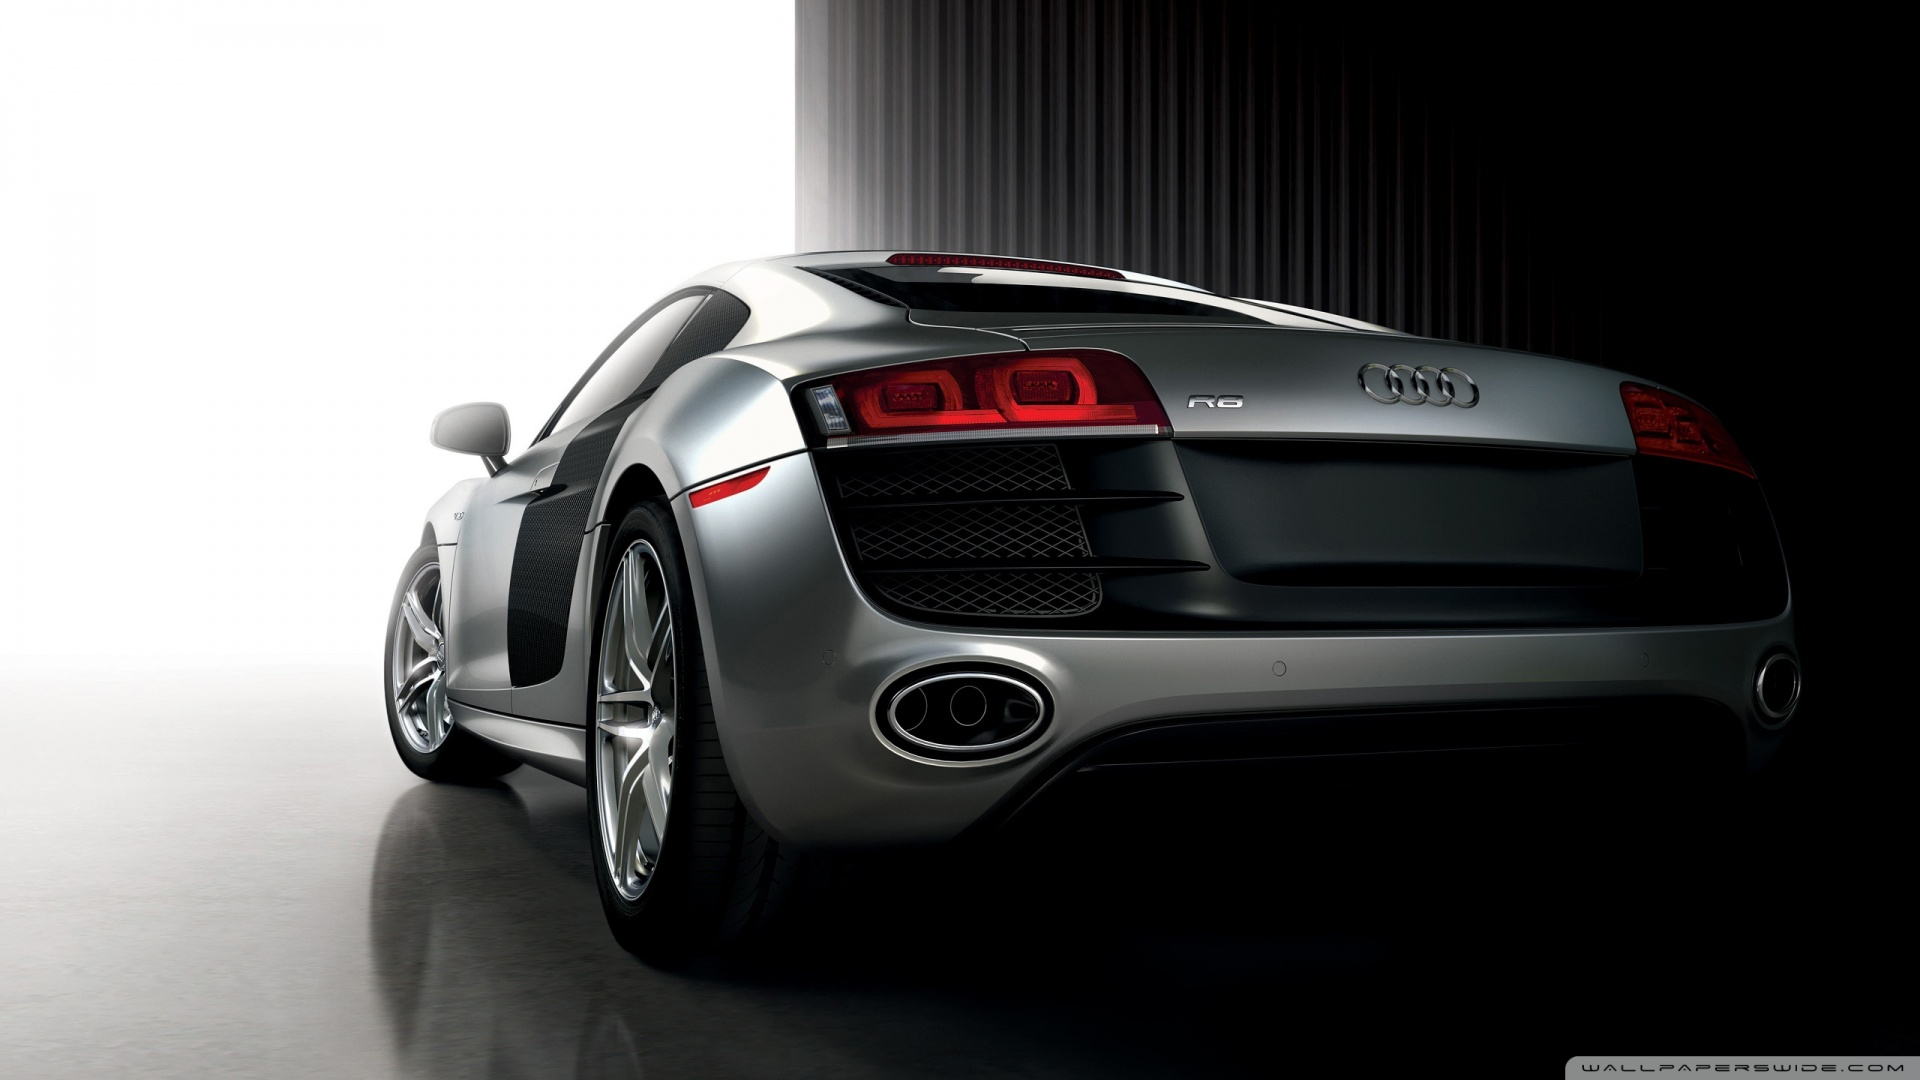 Audi R8 HD desktop wallpaper : Widescreen : High Definition